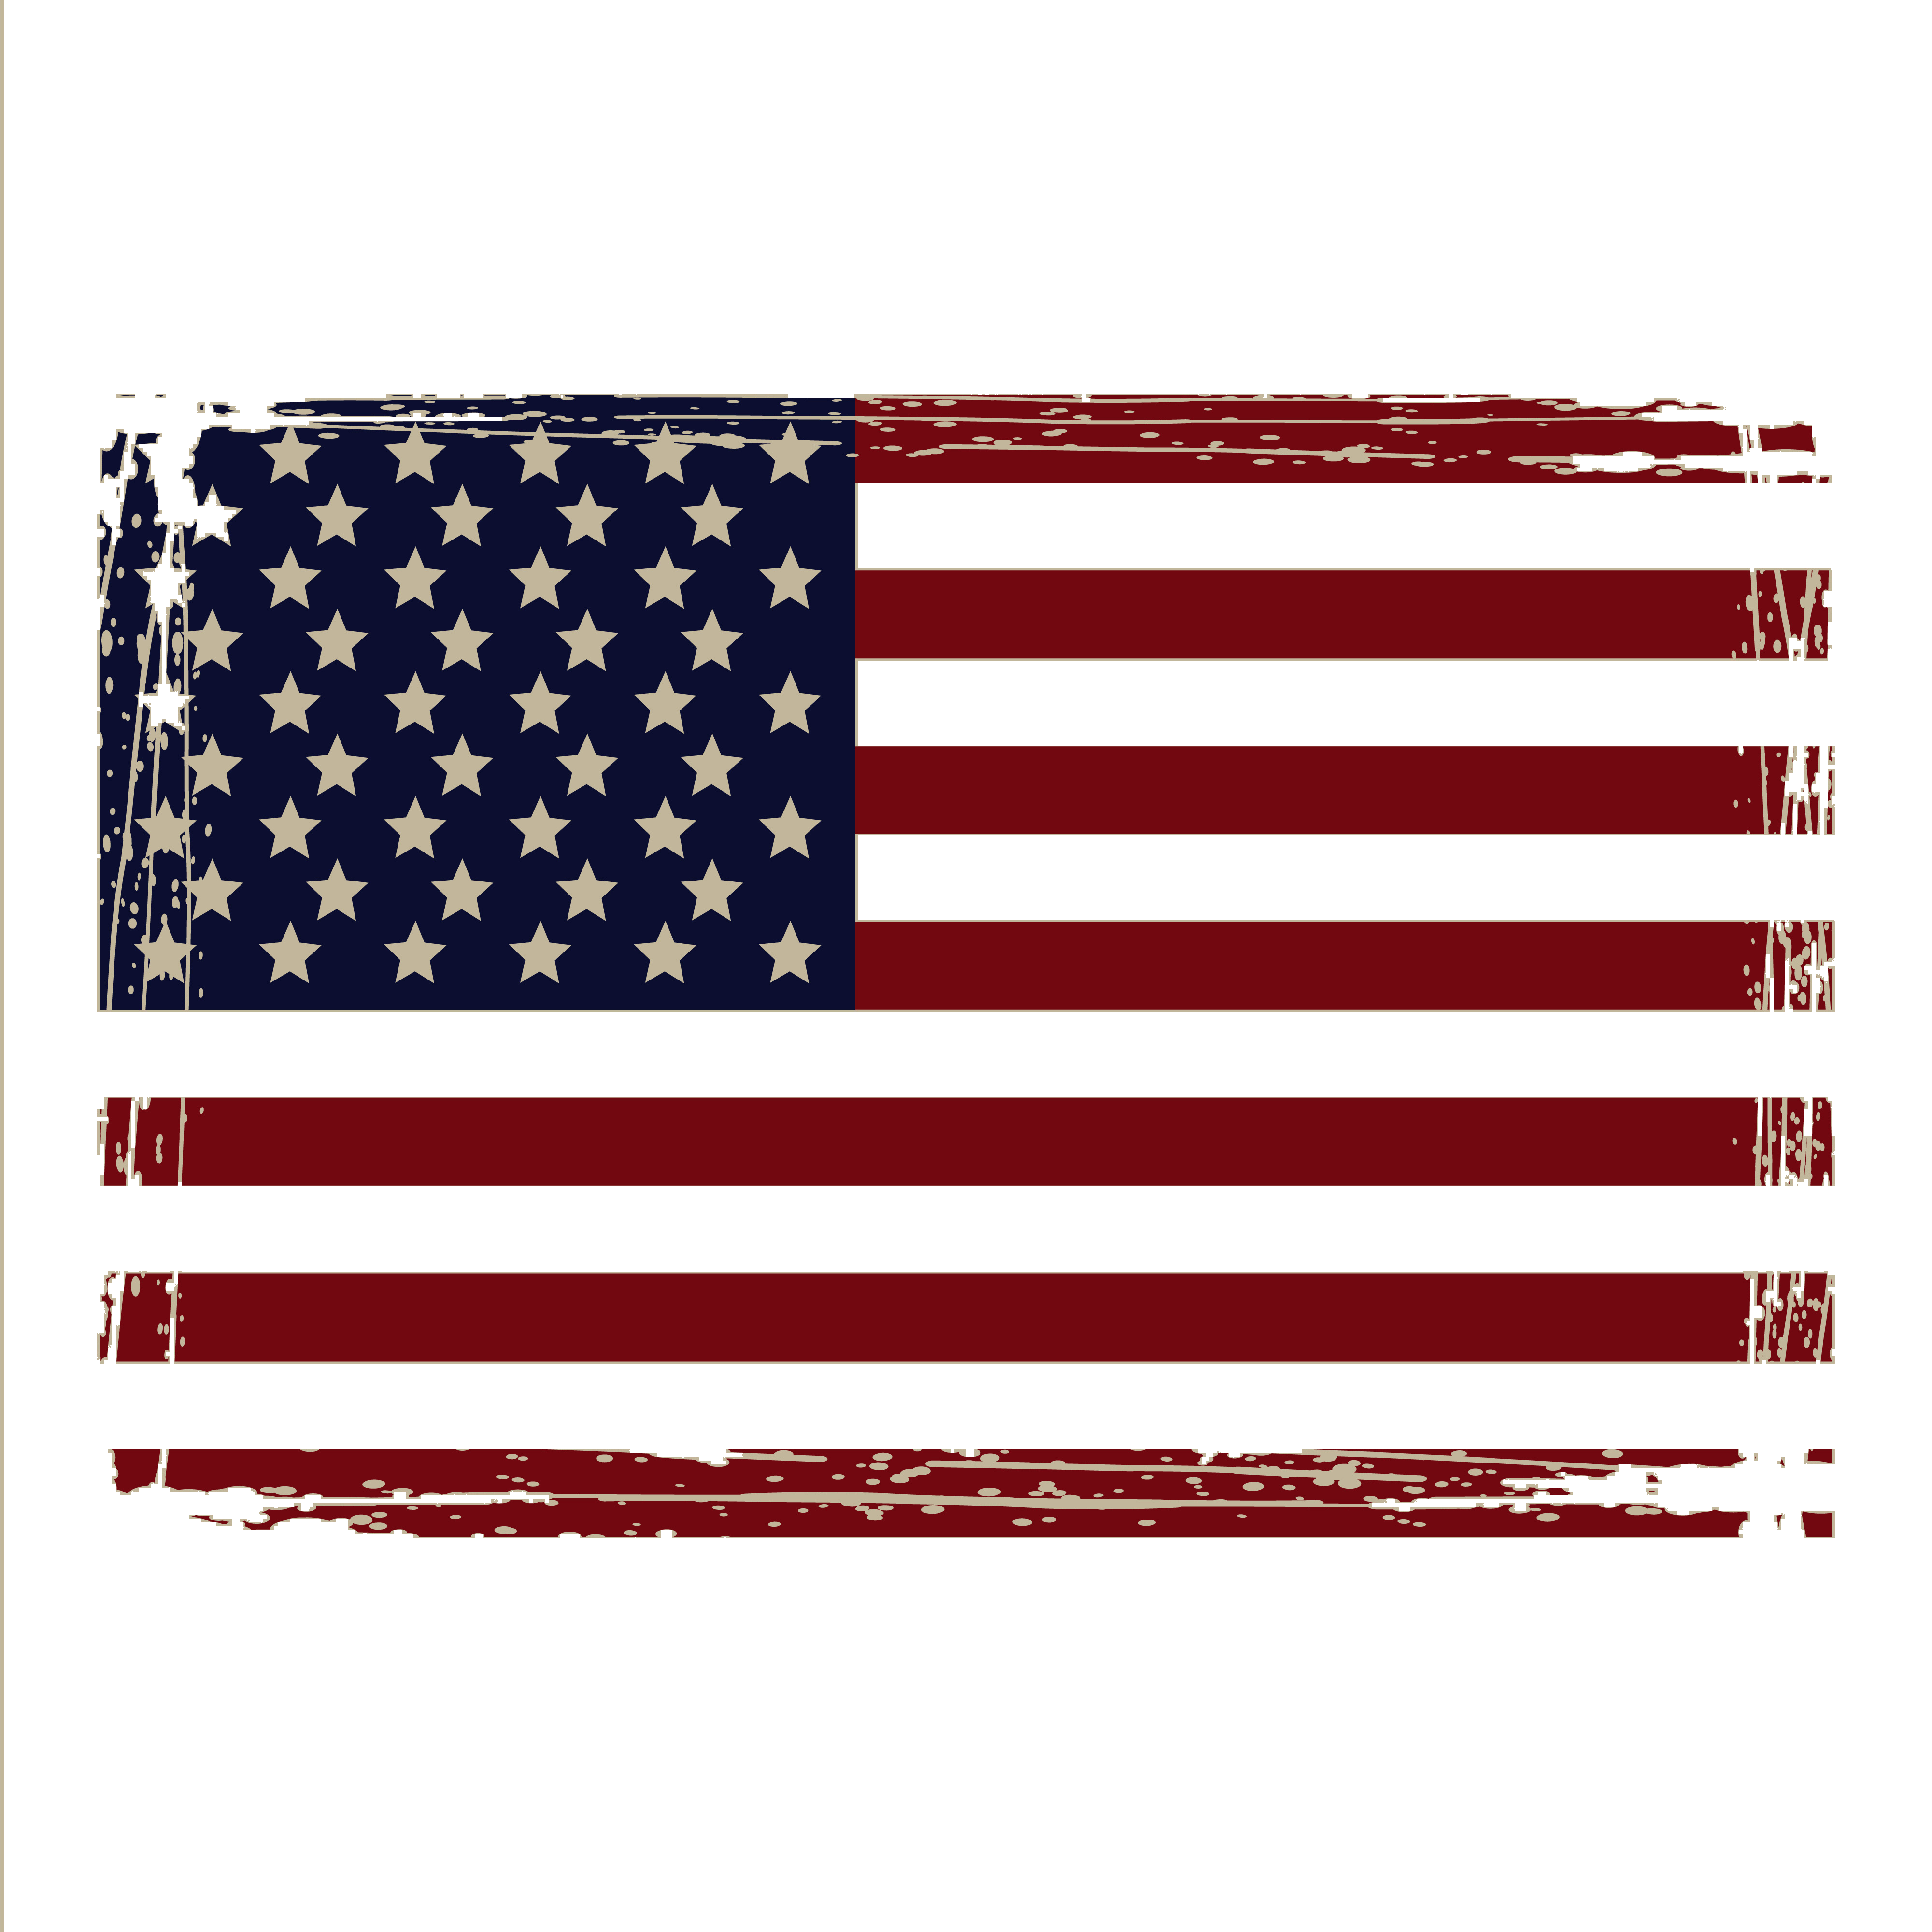 United States Flag Rules   Military with PTSD